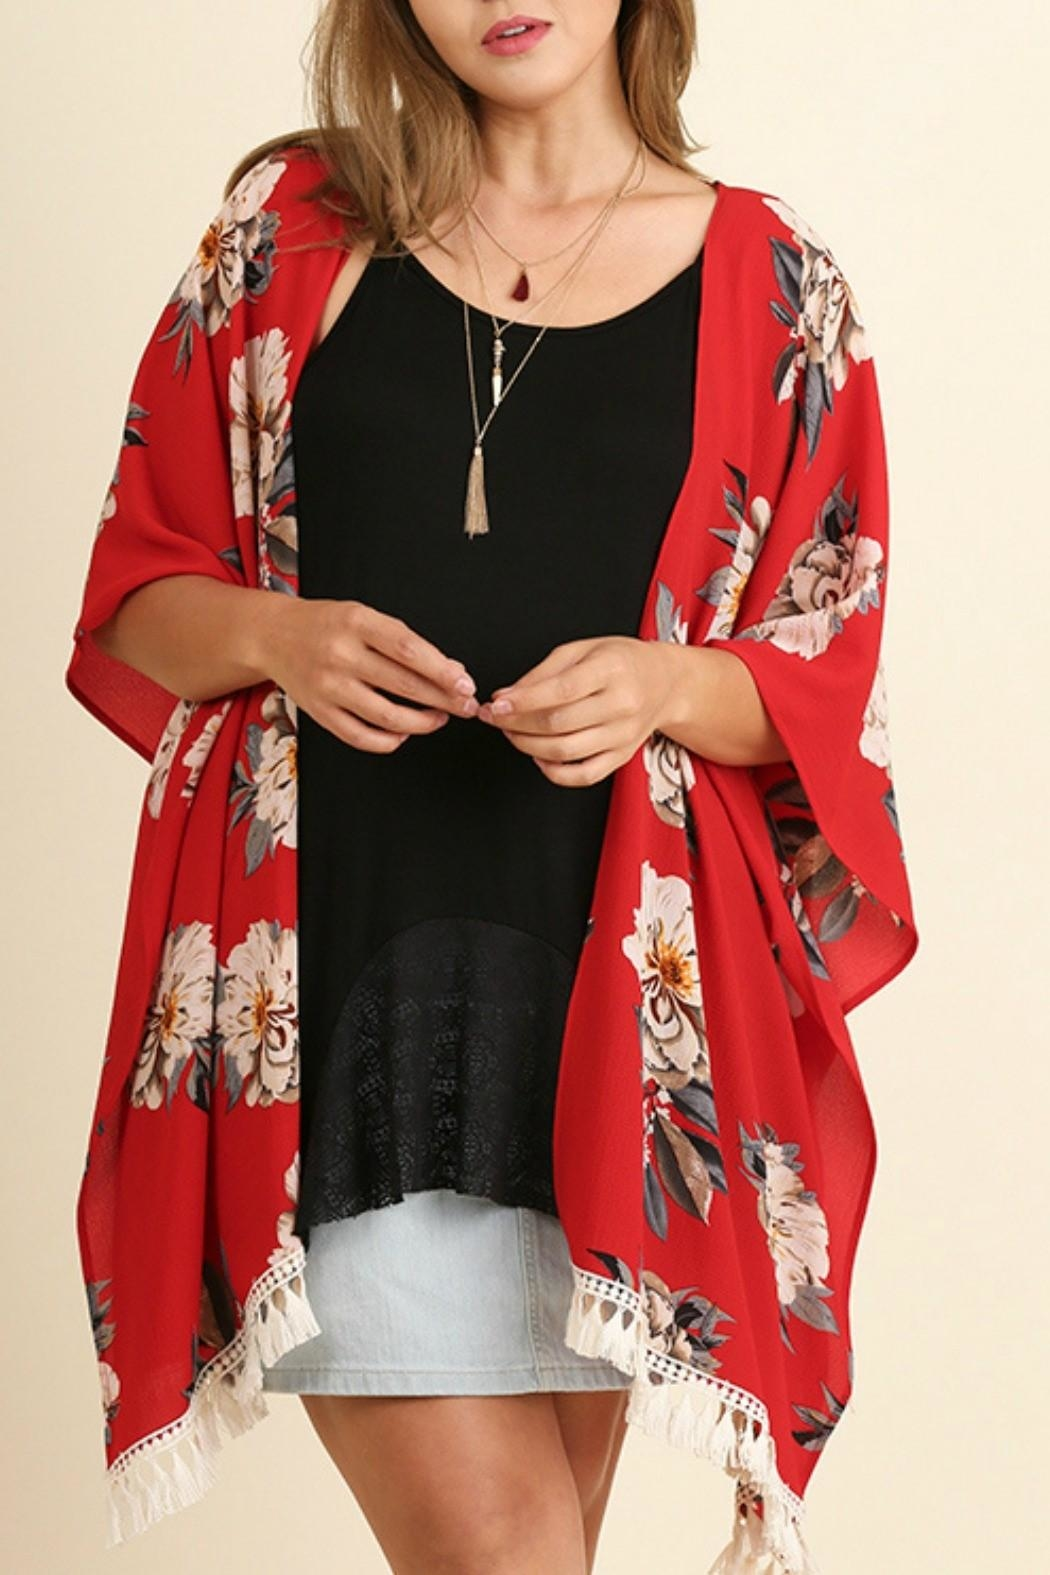 Umgee USA Red Floral Kimono from Montana by Foxwood Boutique ...